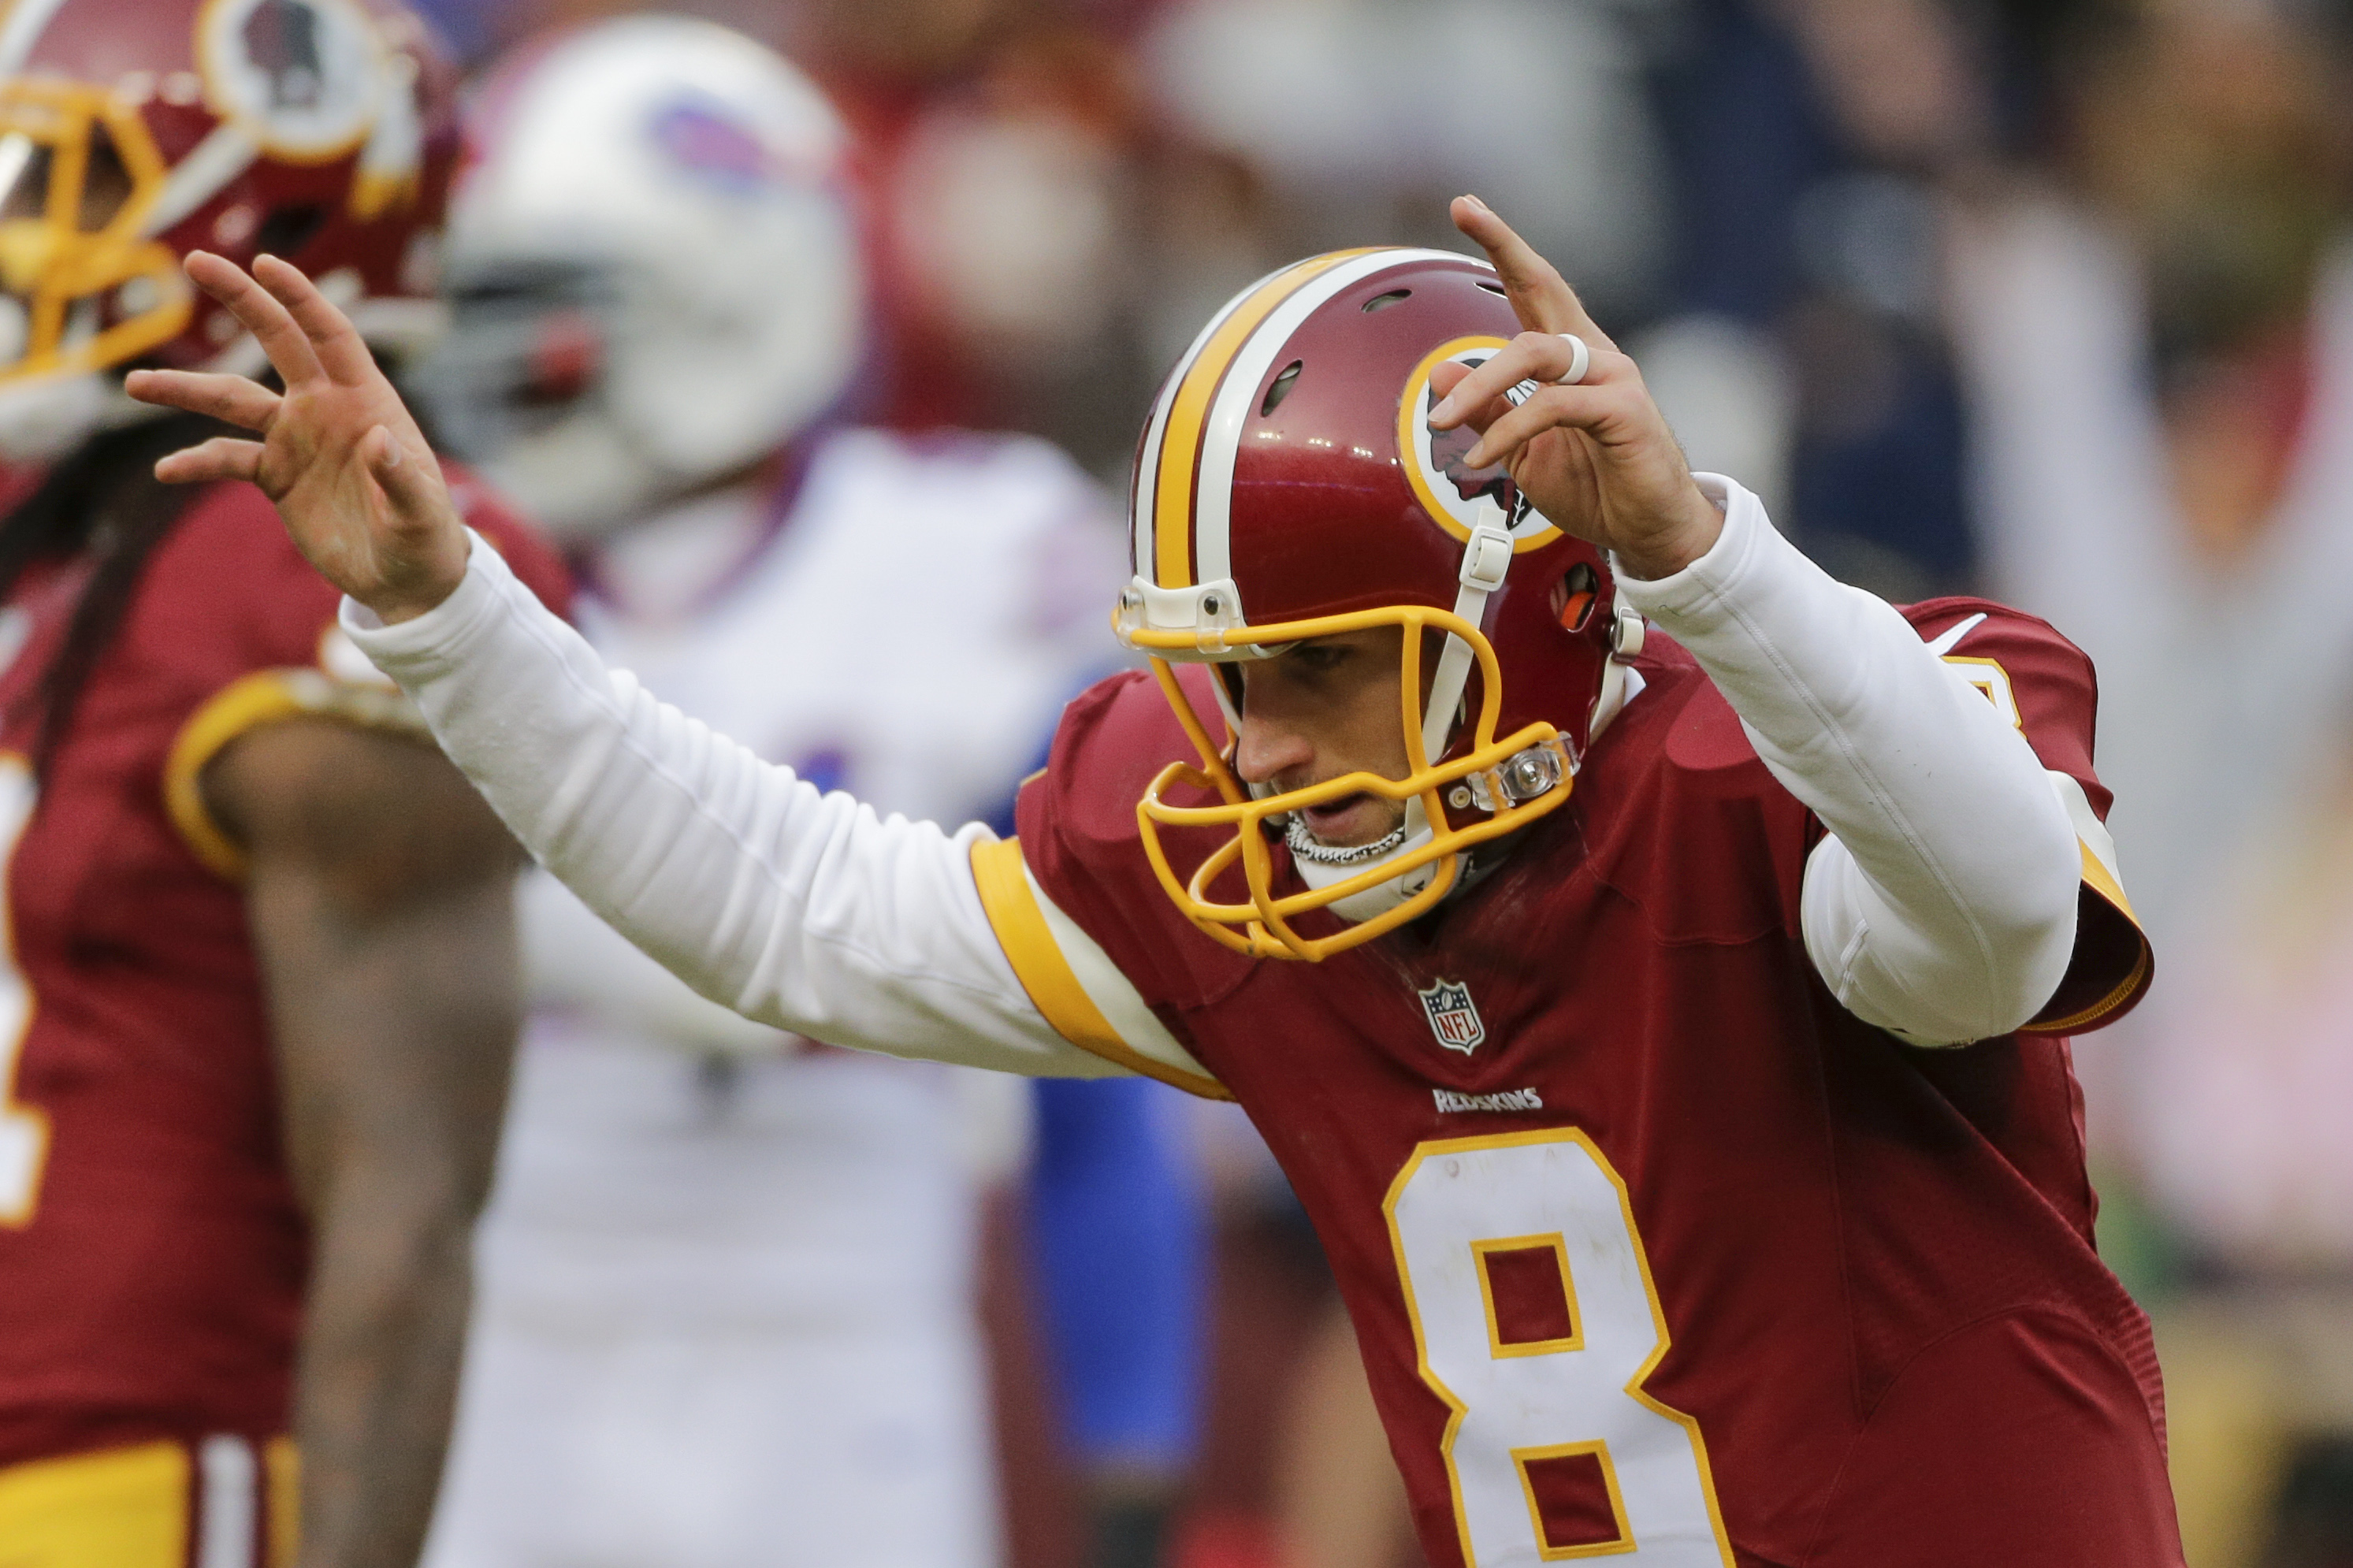 FILE - In this Dec. 20, 2015, file photo, Washington Redskins quarterback Kirk Cousins (8) celebrates wide receiver Pierre Garcon's touchdown during the second half of an NFL football game against the Buffalo Bills in Landover, Md. Redskins play the the P